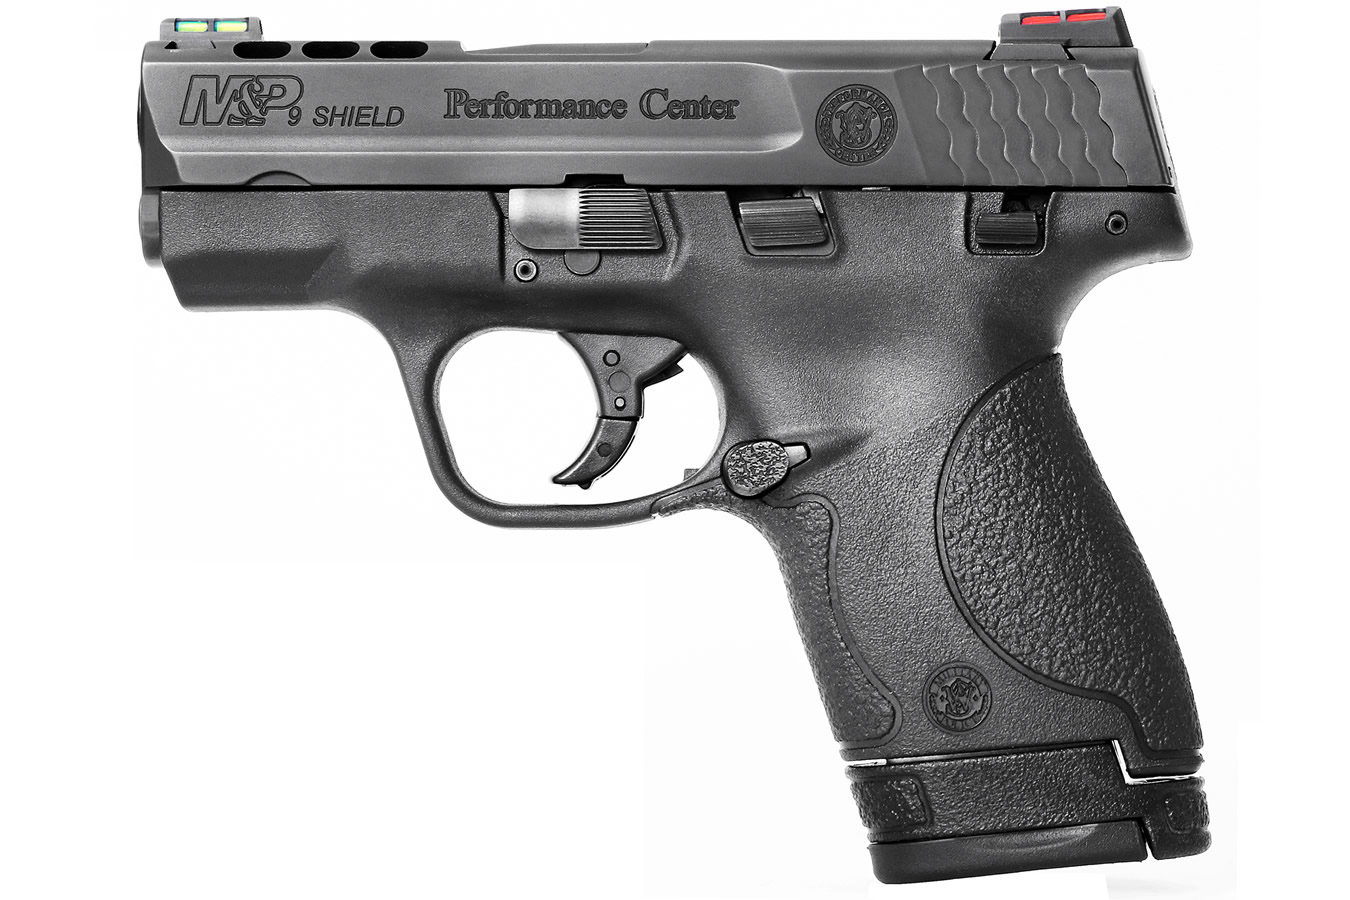 MP9 SHIELD 9MM PERFORMANCE CENTER PORTED